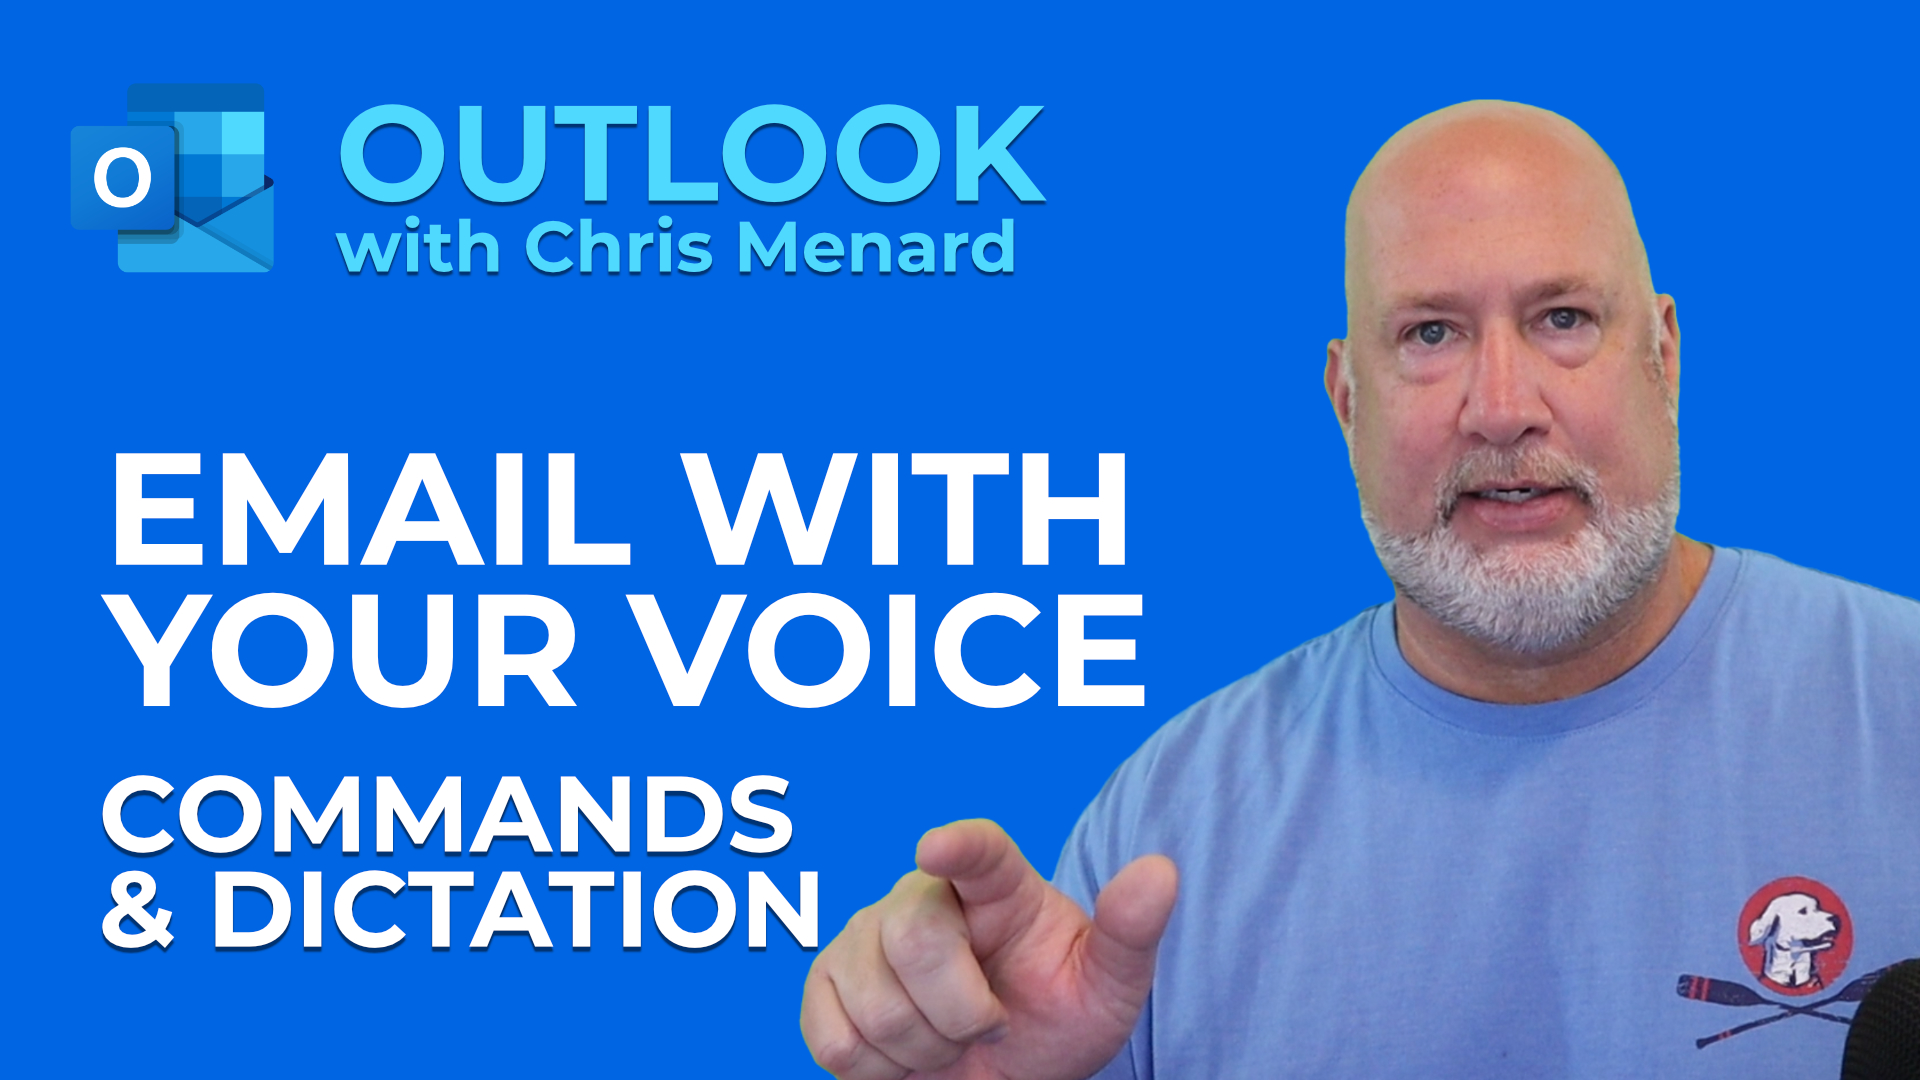 Outlook Speed Up Emailing by Using Voice Commands and Dictation